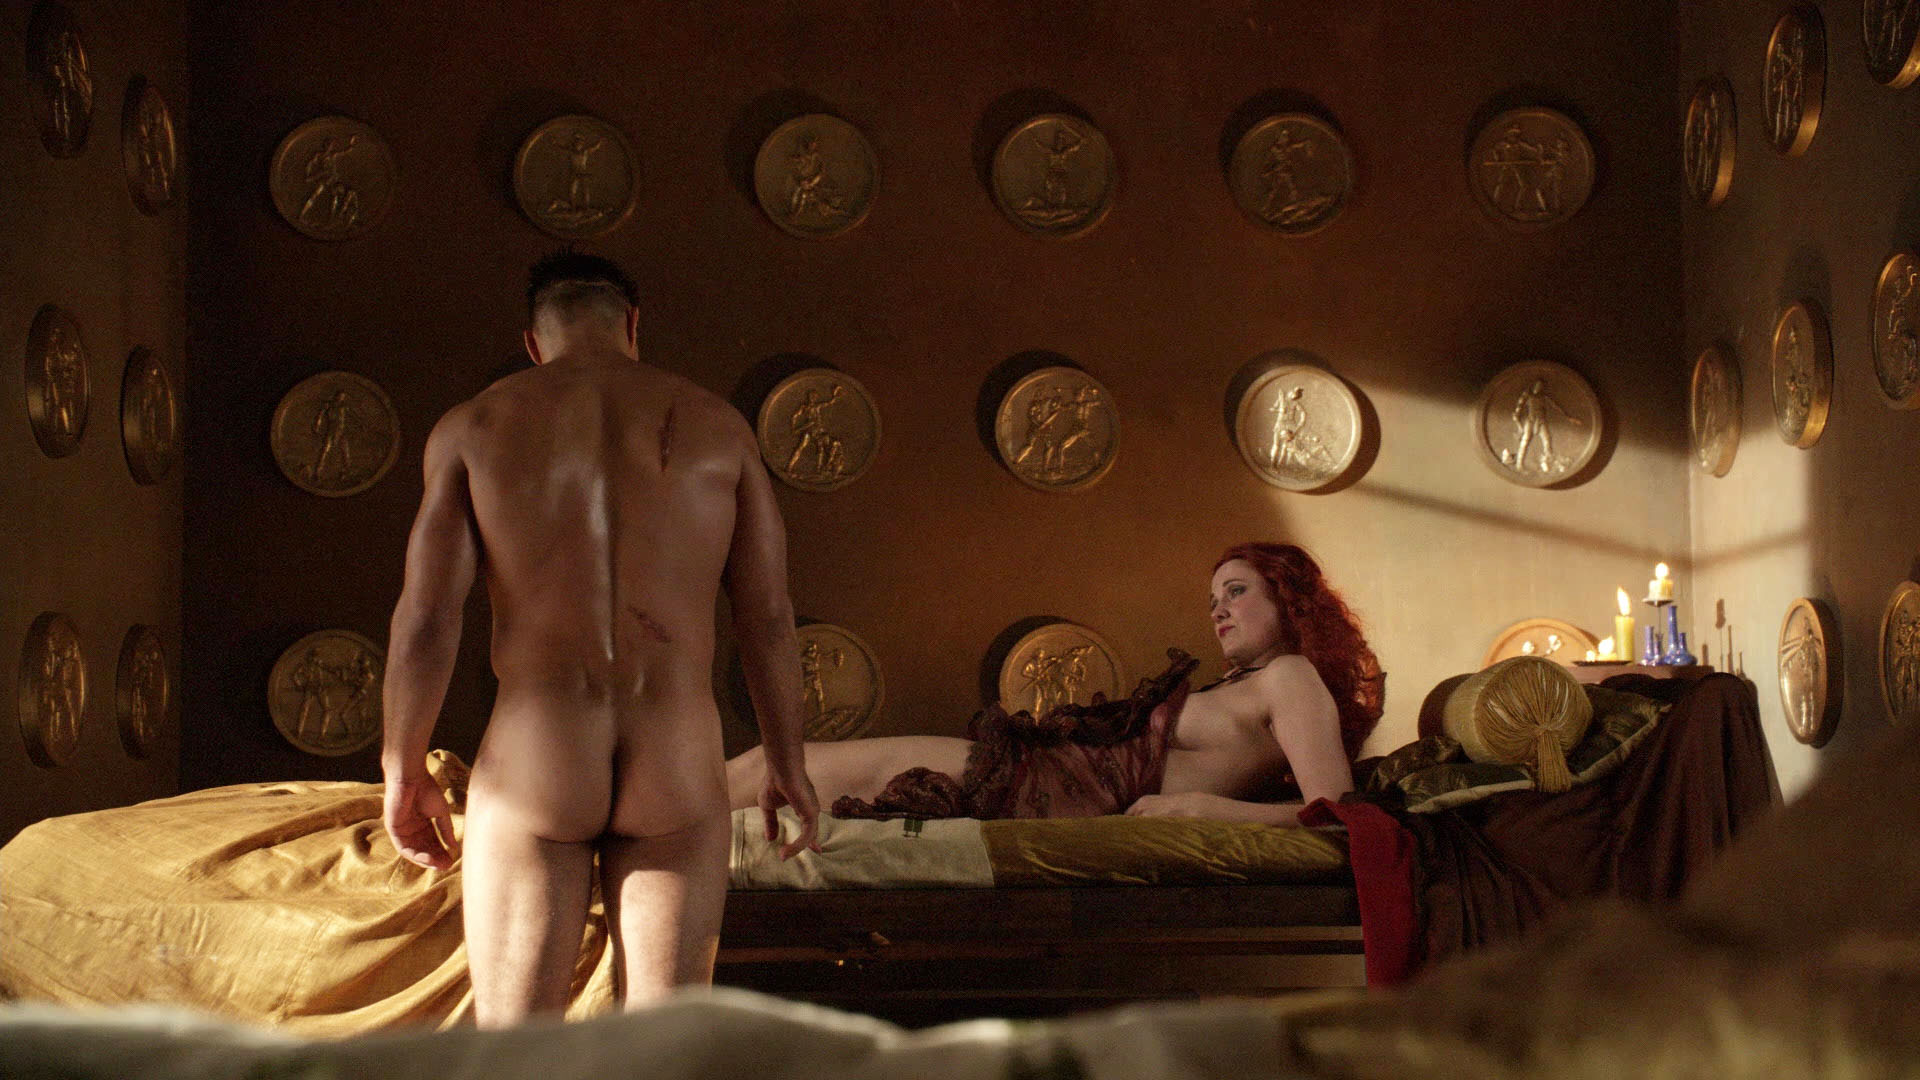 Thank for sex scenes spartacus have